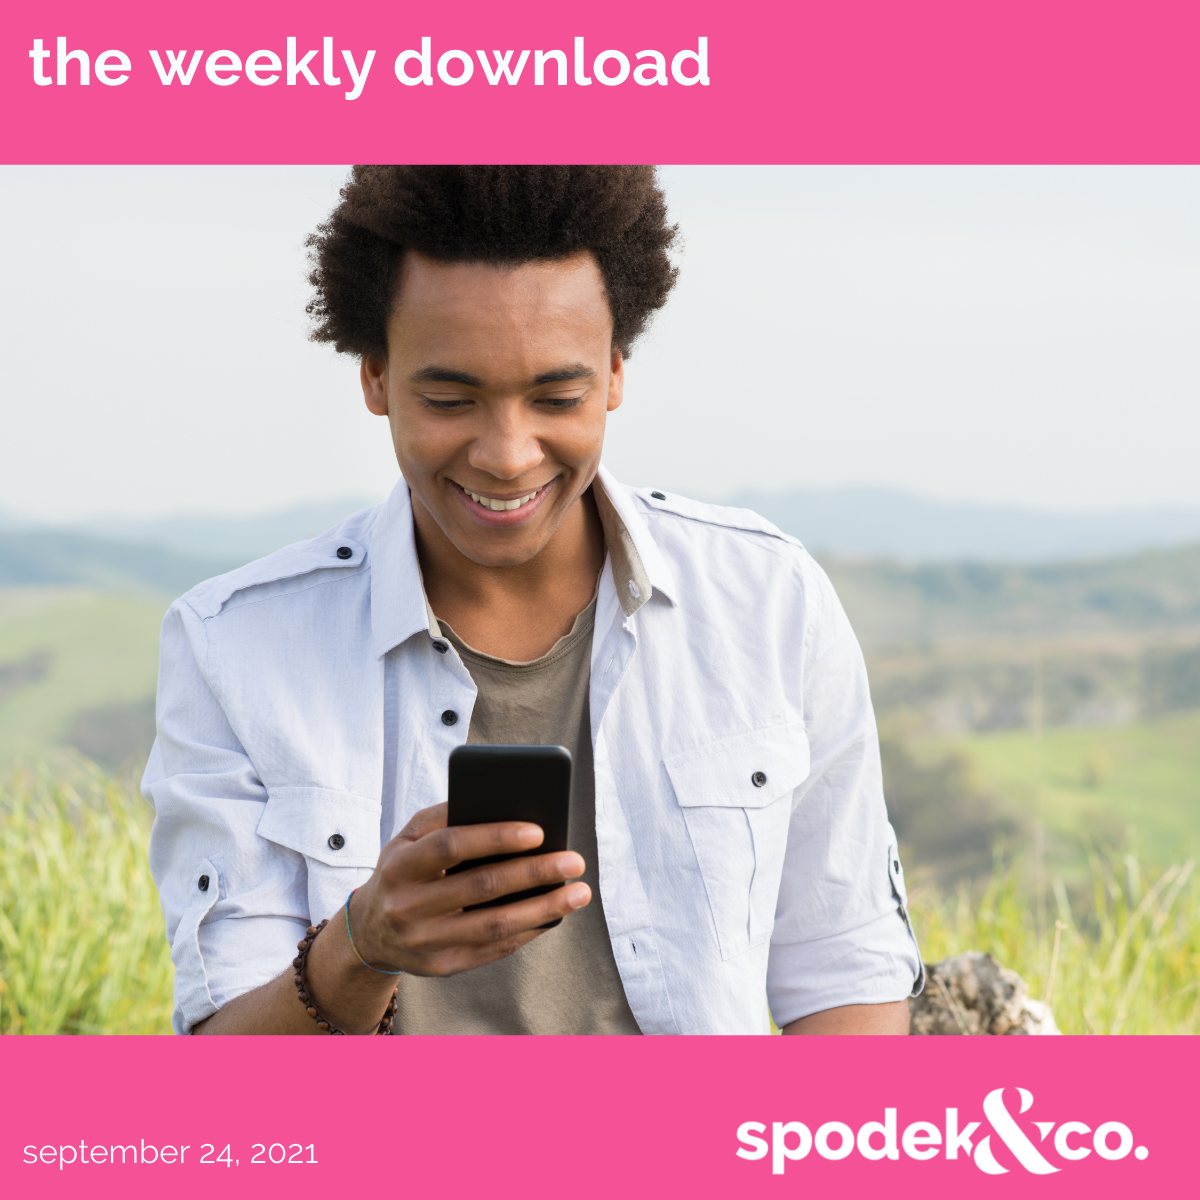 The Weekly Download – September 24, 2021